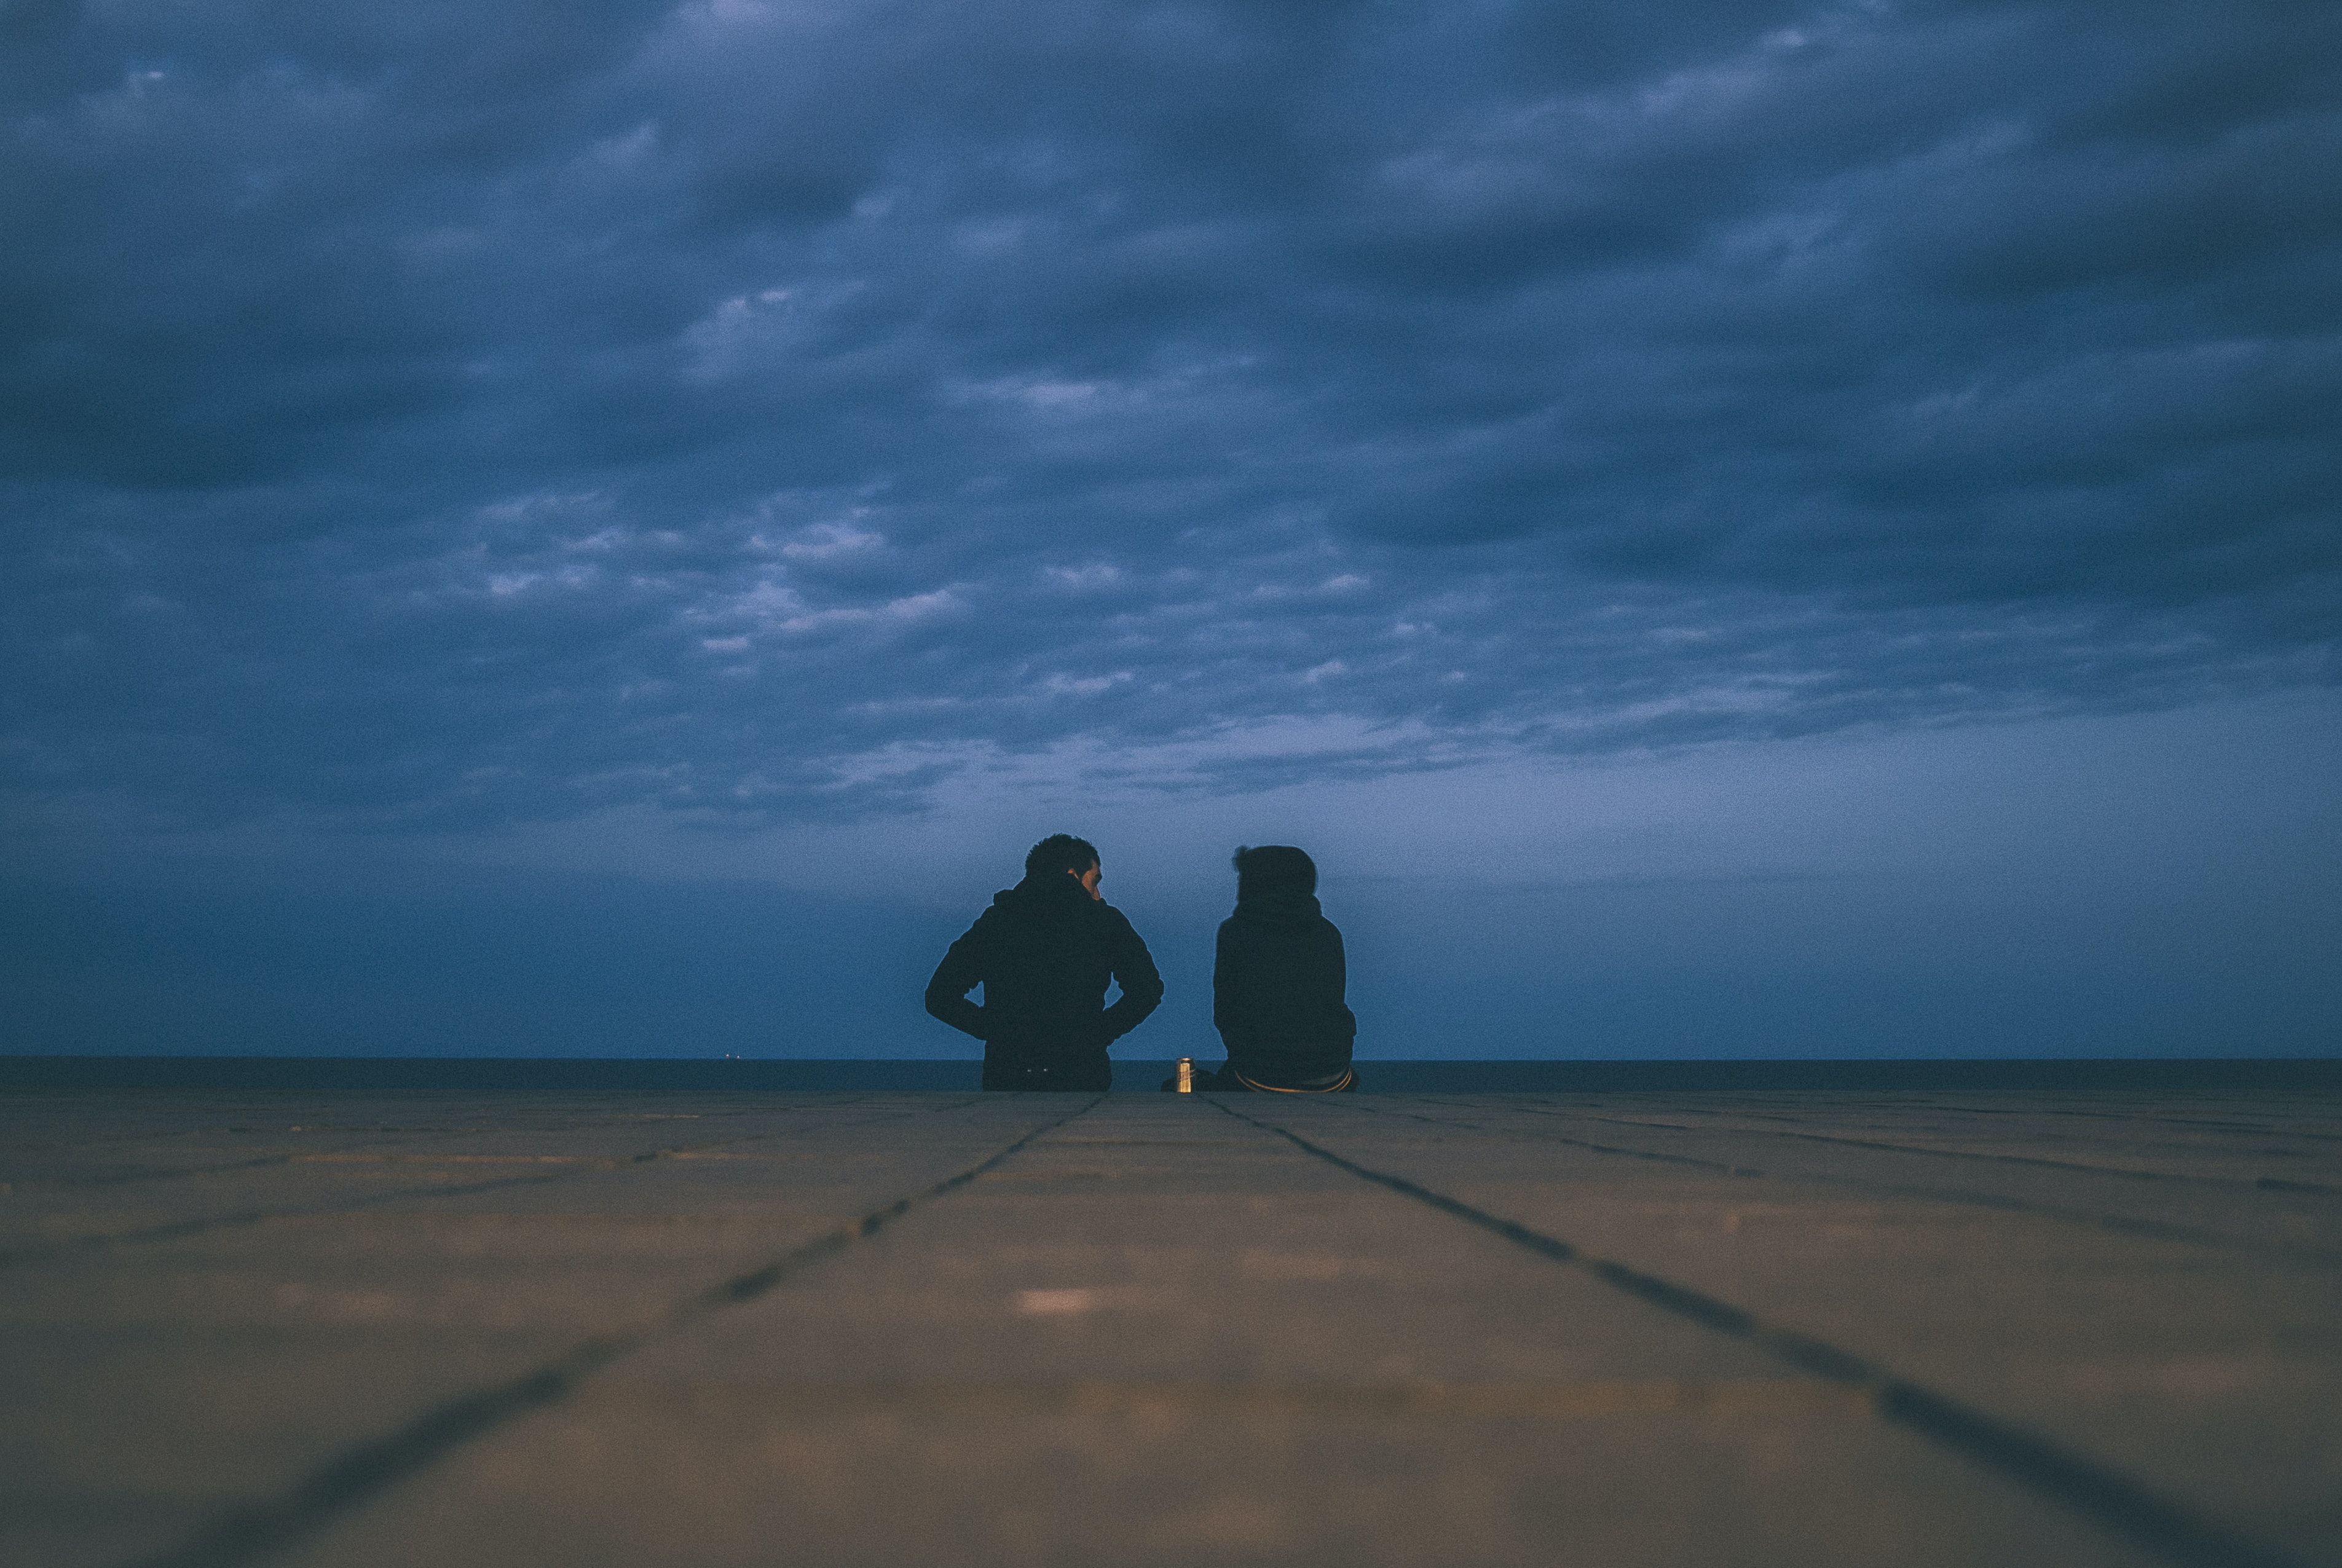 A couple sitting down under a stormy, cloudy sky